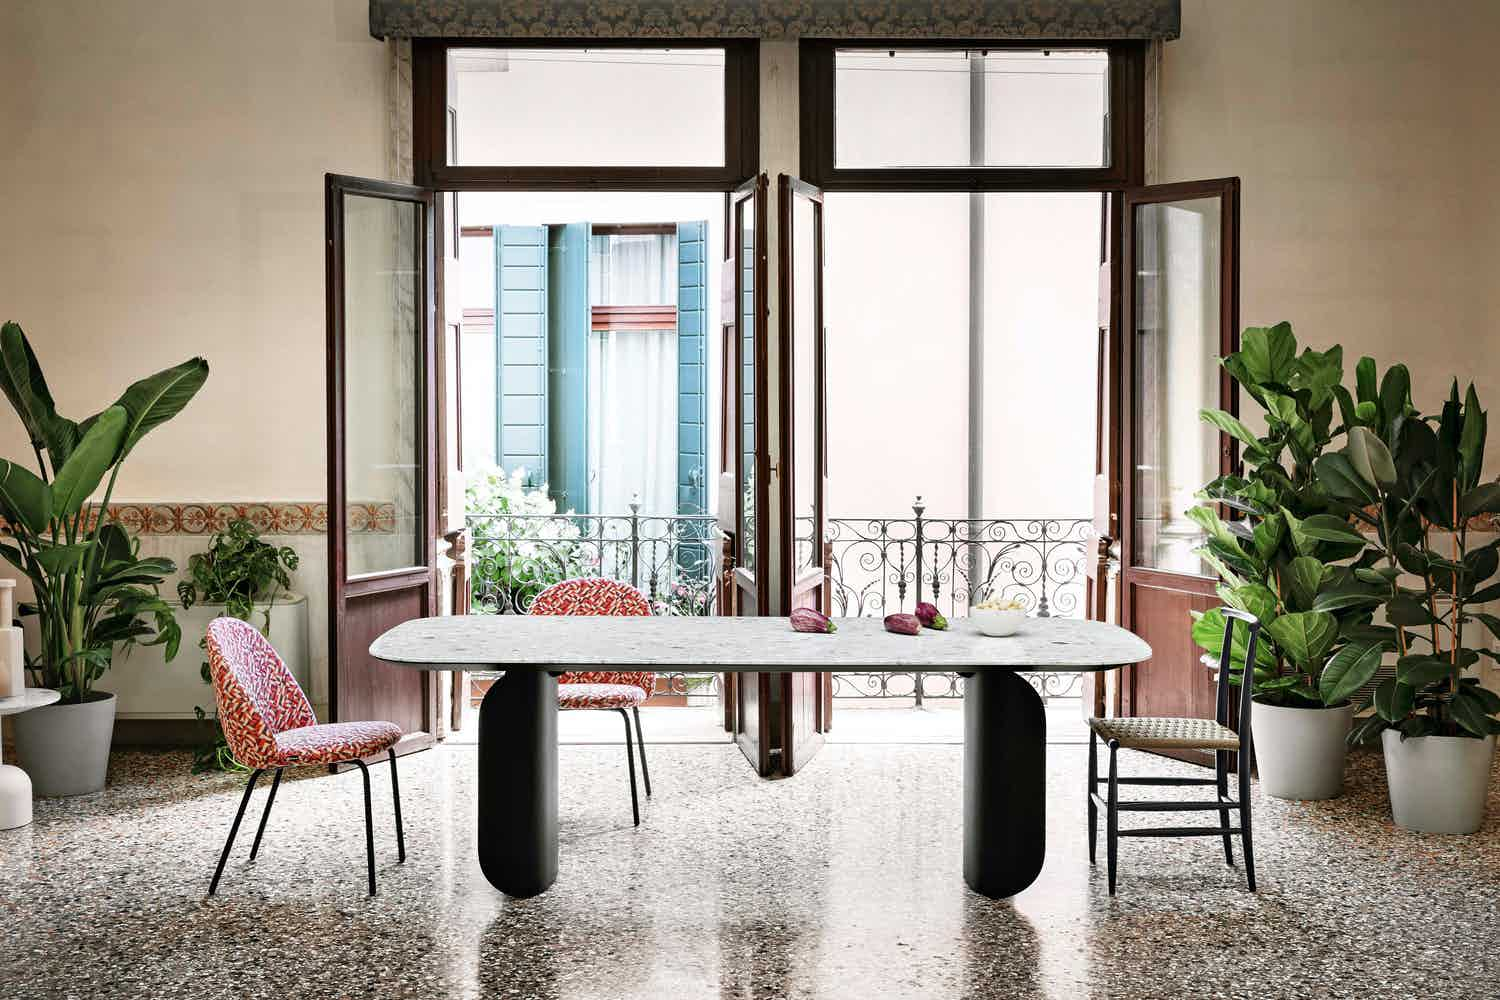 The Barry Table, designed by Alain Gilles for Miniforms, is distinctly graphic, sporting intriguing volumes - a mixture of solidity and lightness. The legs form a prominent feature and curl distinctly around themselves, revealing the table's dynamic personality.